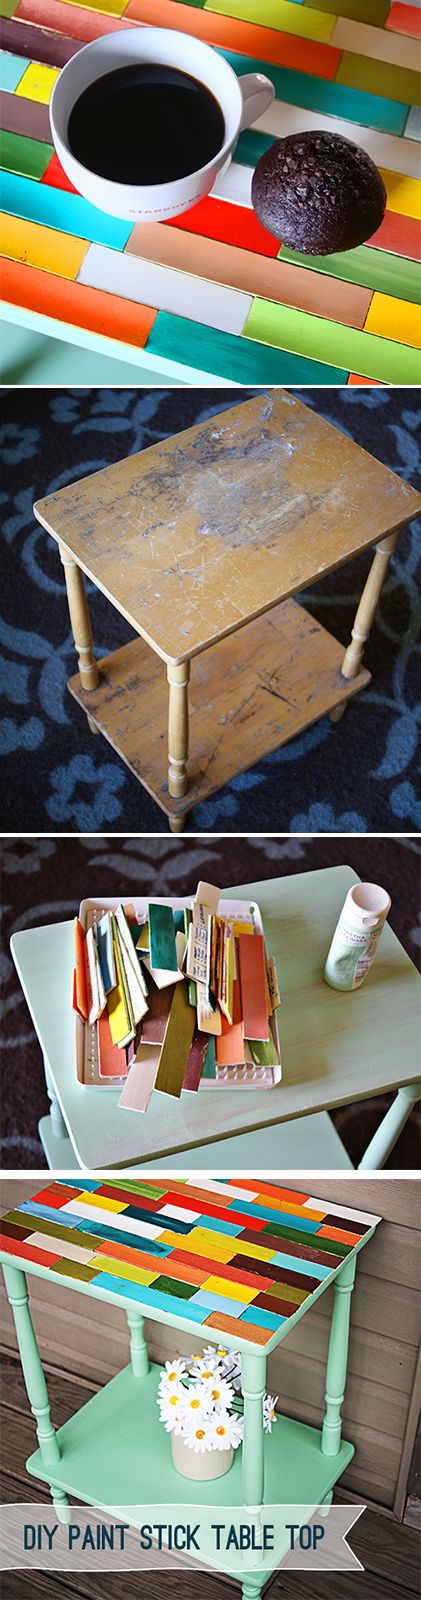 How to make a paint stick table top from @savedbyloves #DIY #Tutorial